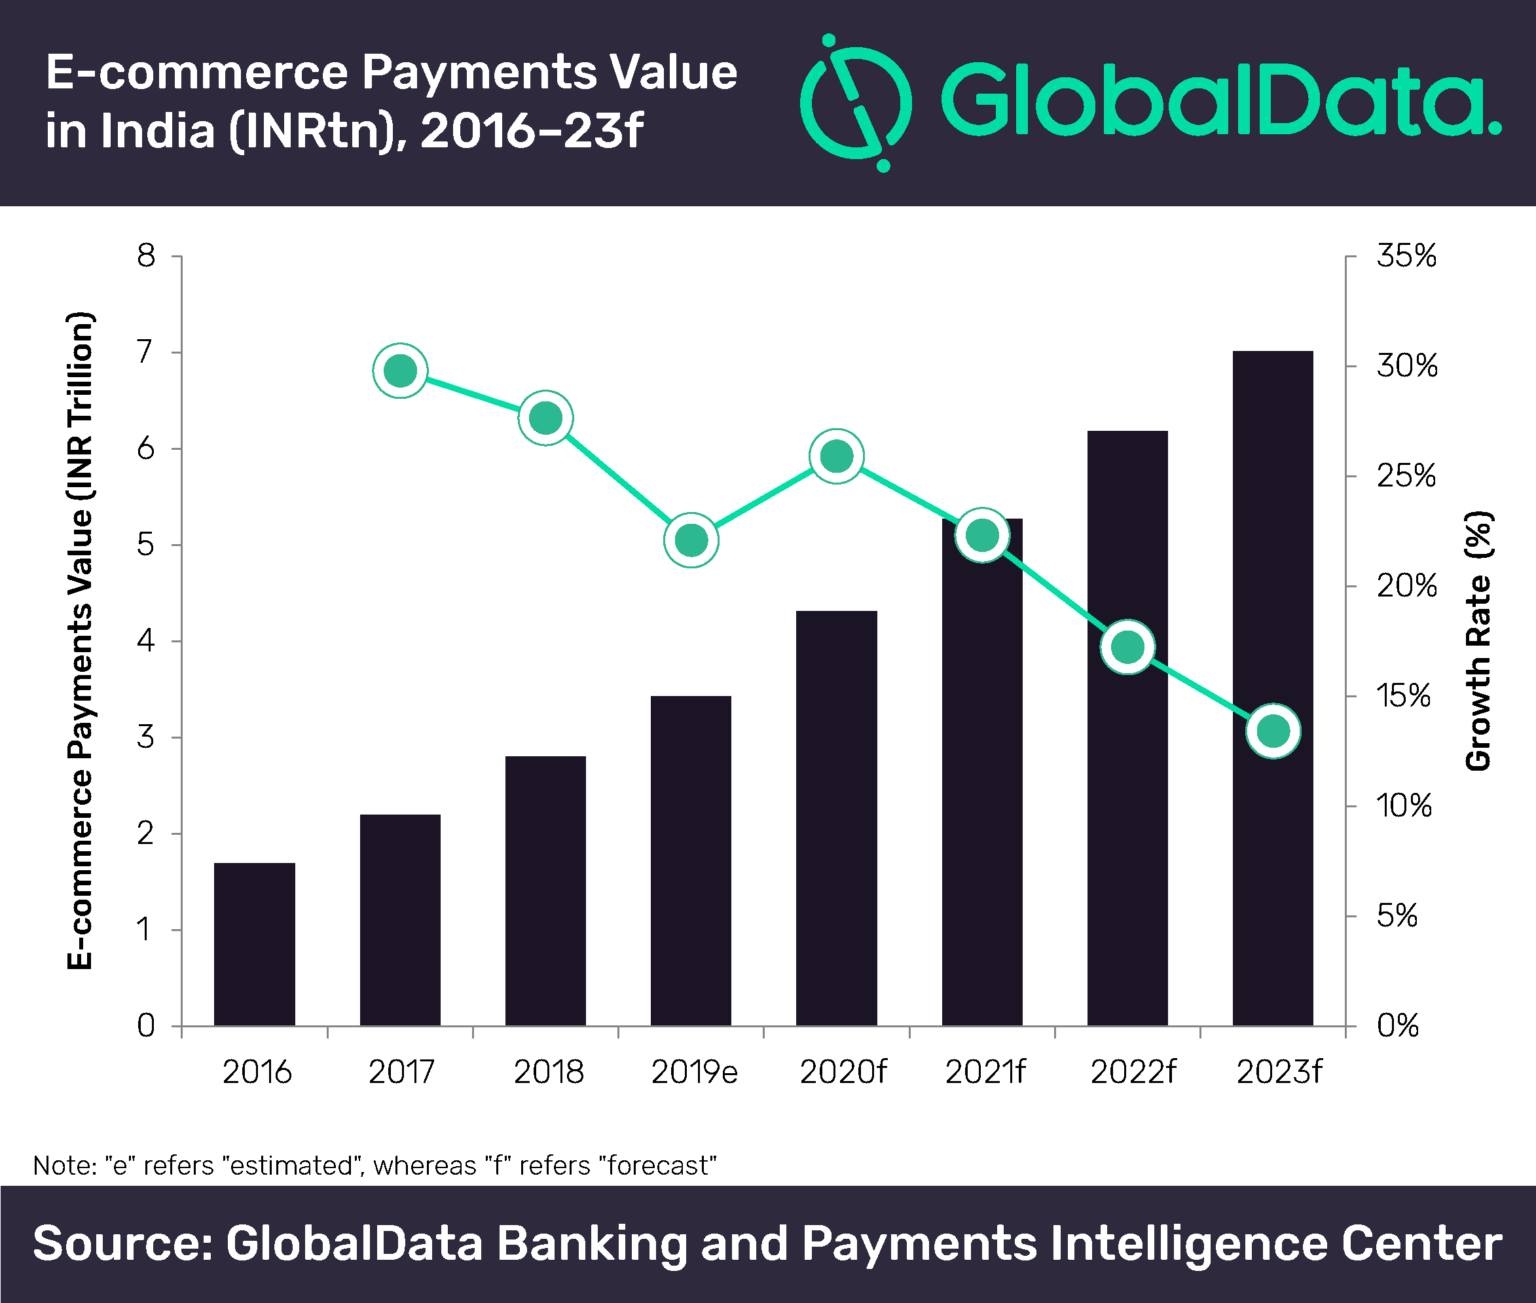 Future of Digital Marketing in India - e-commerce payments 2023 forecast